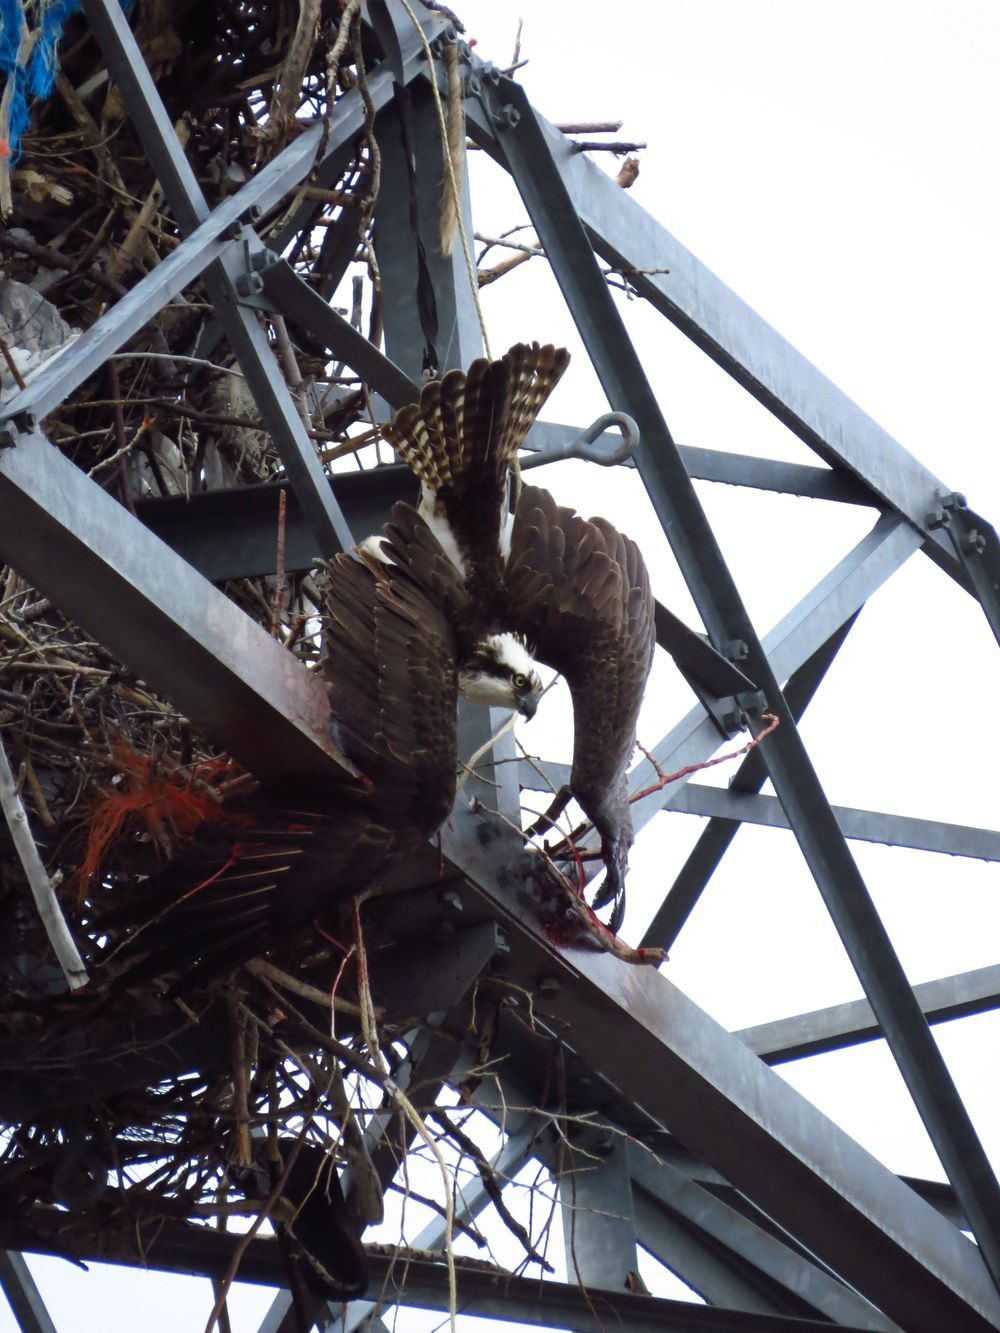 On May 6th 2015, we received a call about an Osprey hanging from the framework of the Estes Park Power plant.